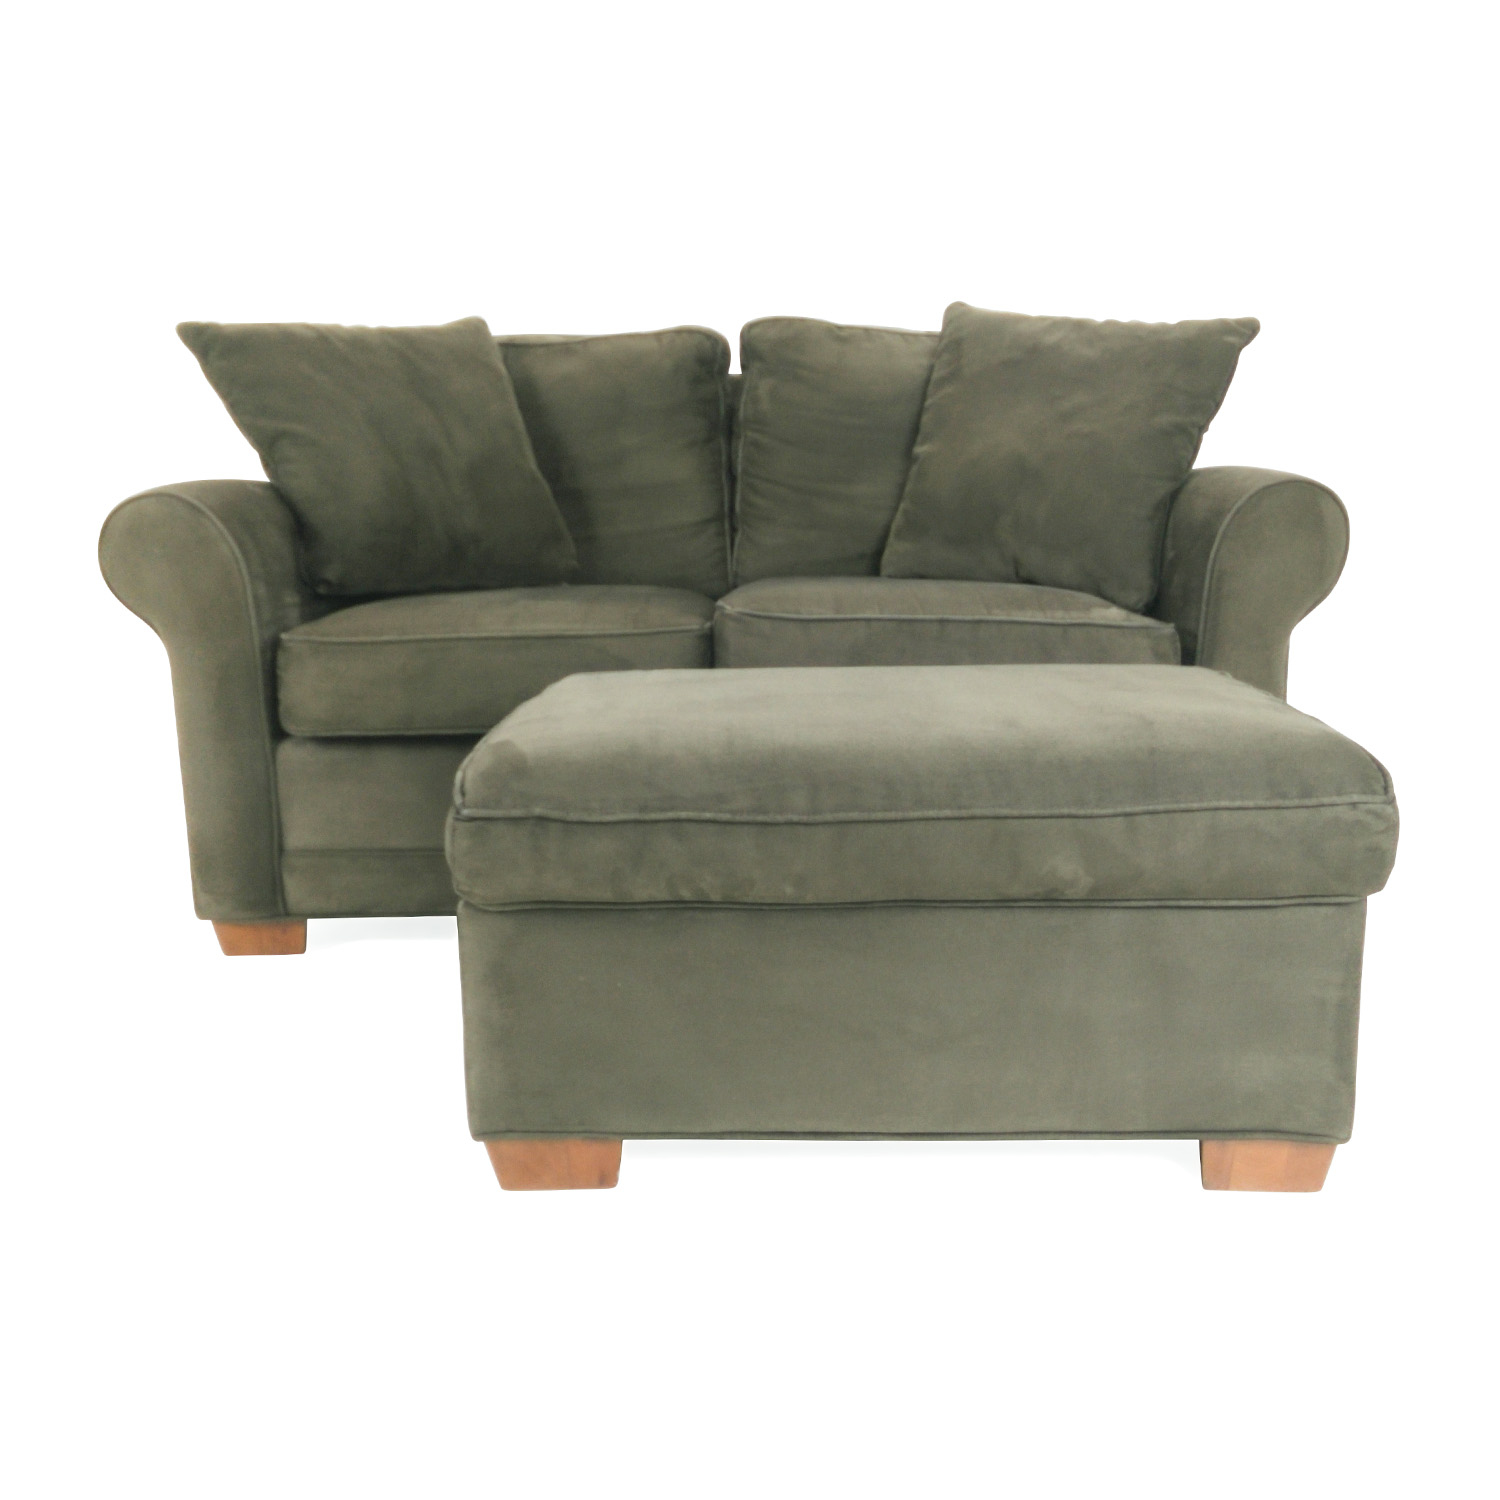 Raymour and Flanigan Raymour and Flanigan Love Seat and Ottoman for sale